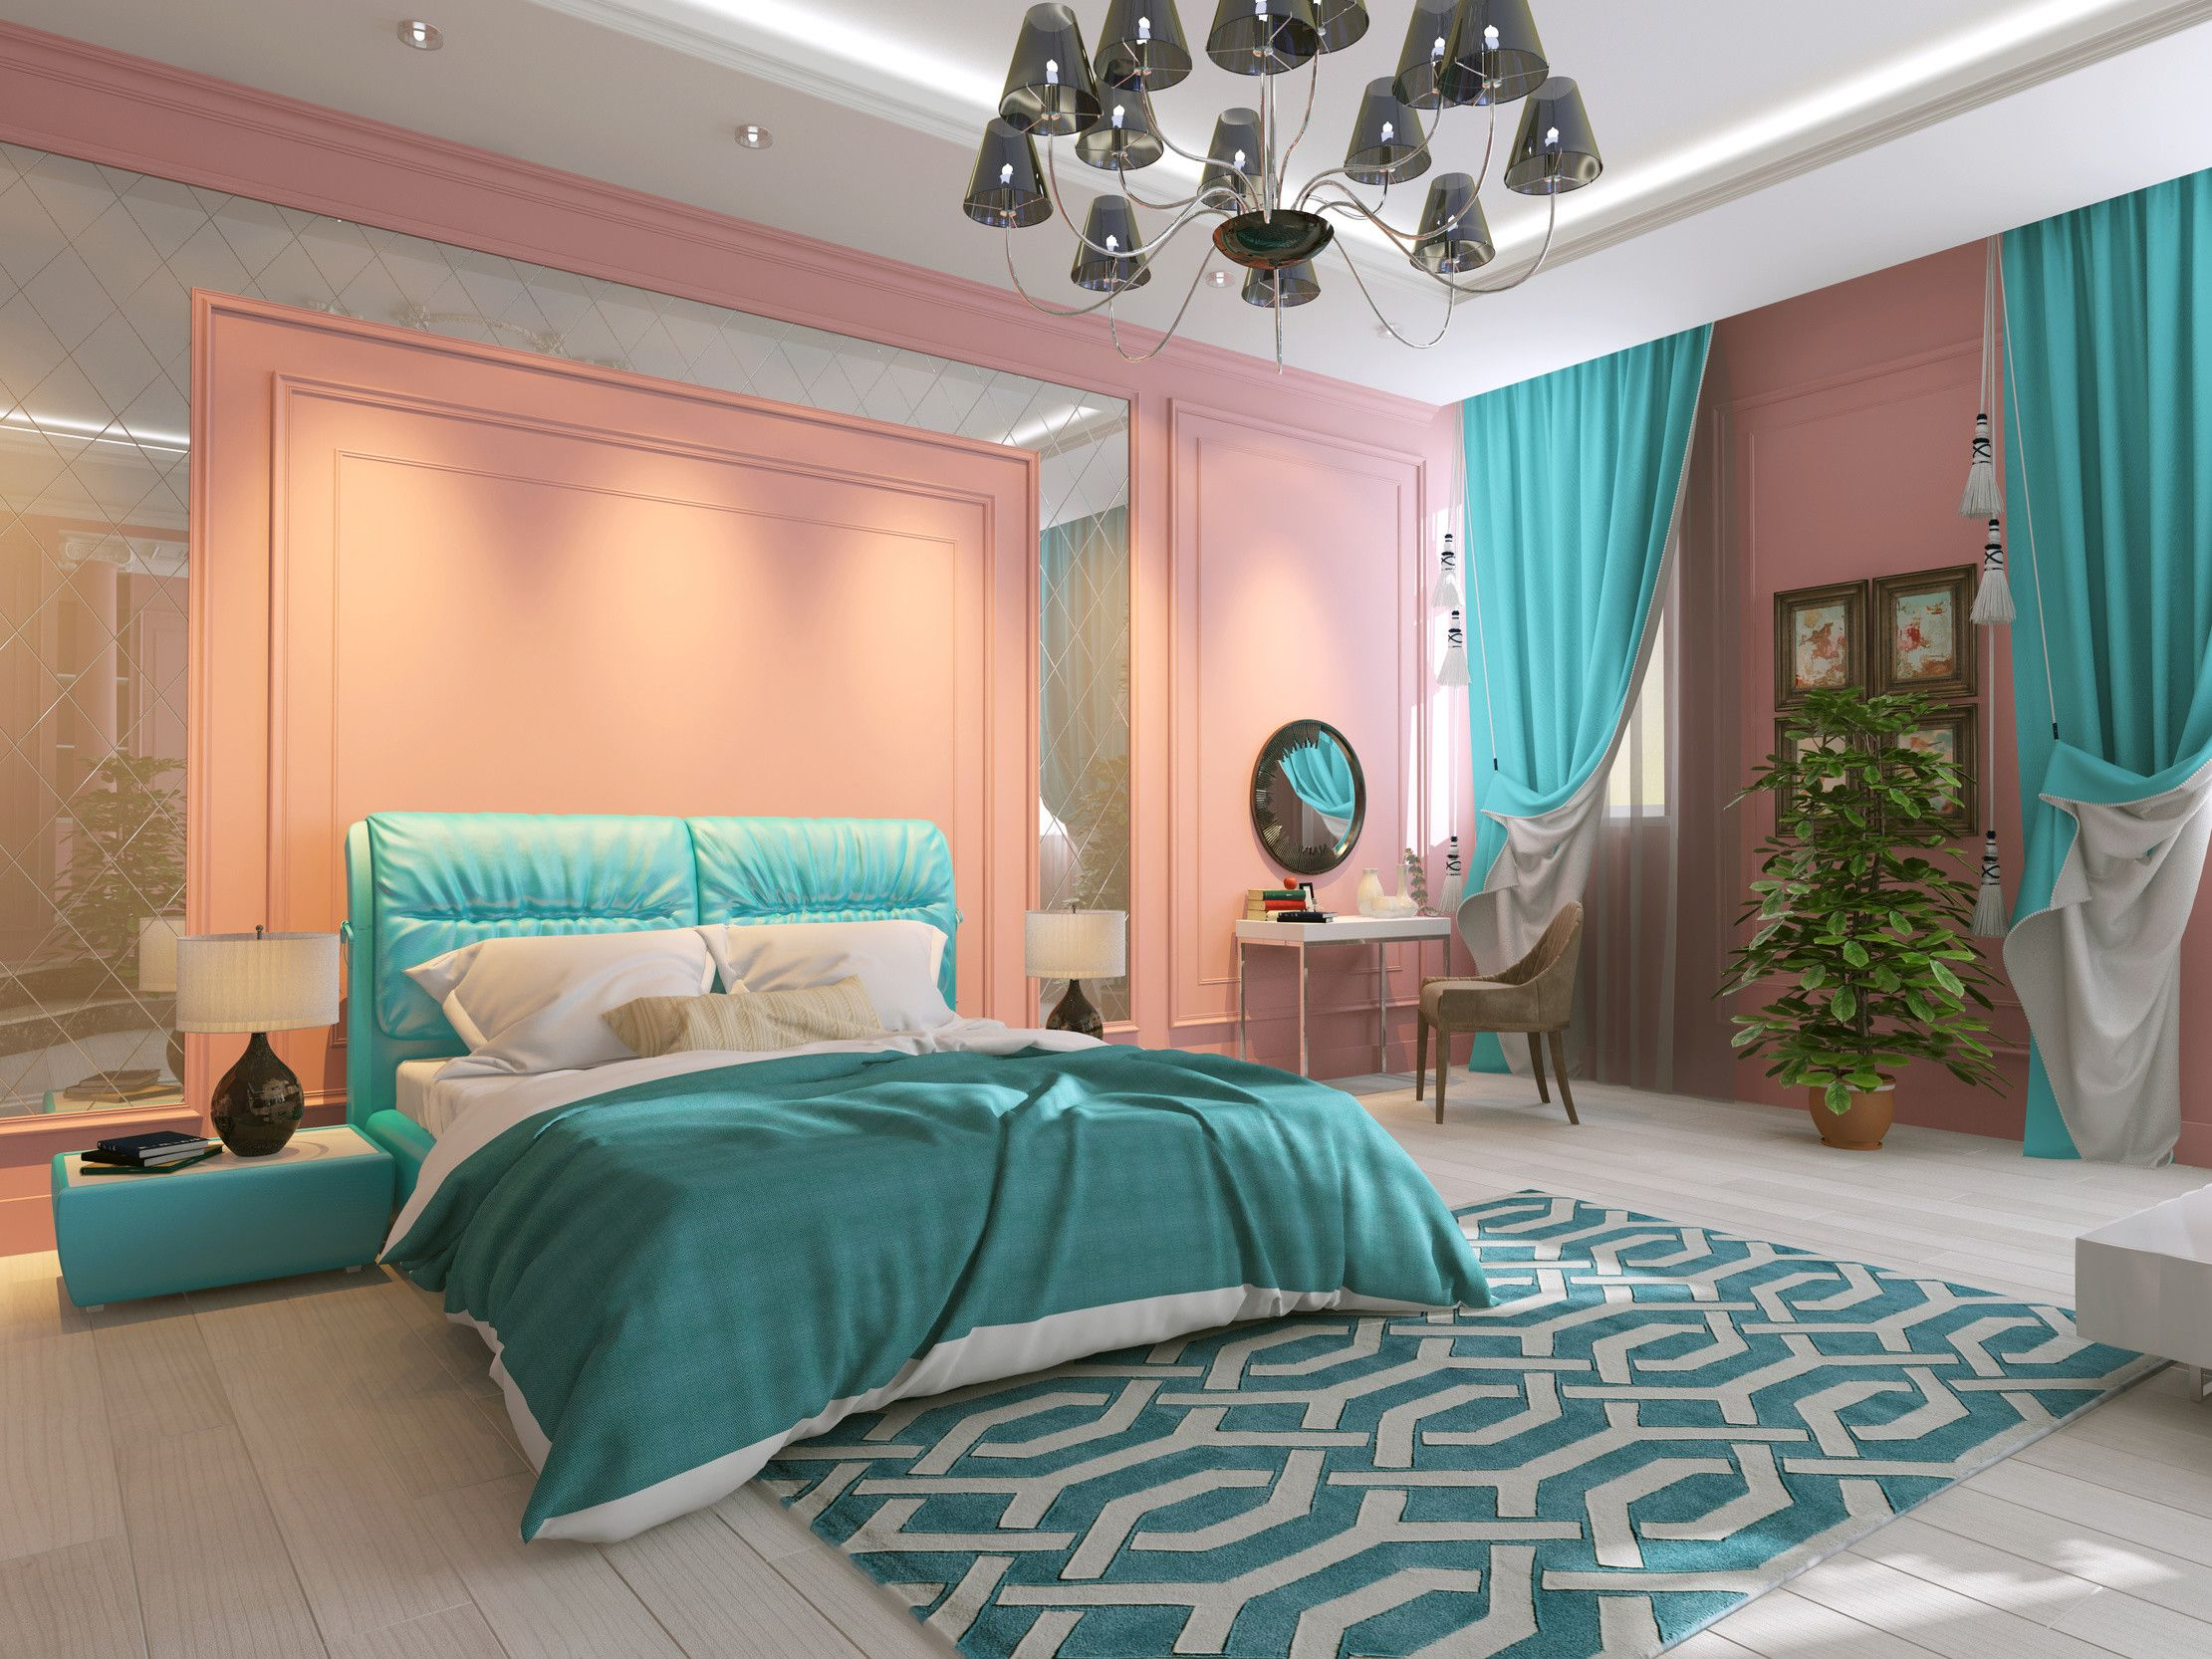 10 Brilliant Turquoise Room Ideas To Freshen Up Your Home Bedroom Turquoise Turquoise Bedroom Decor Turquoise Room